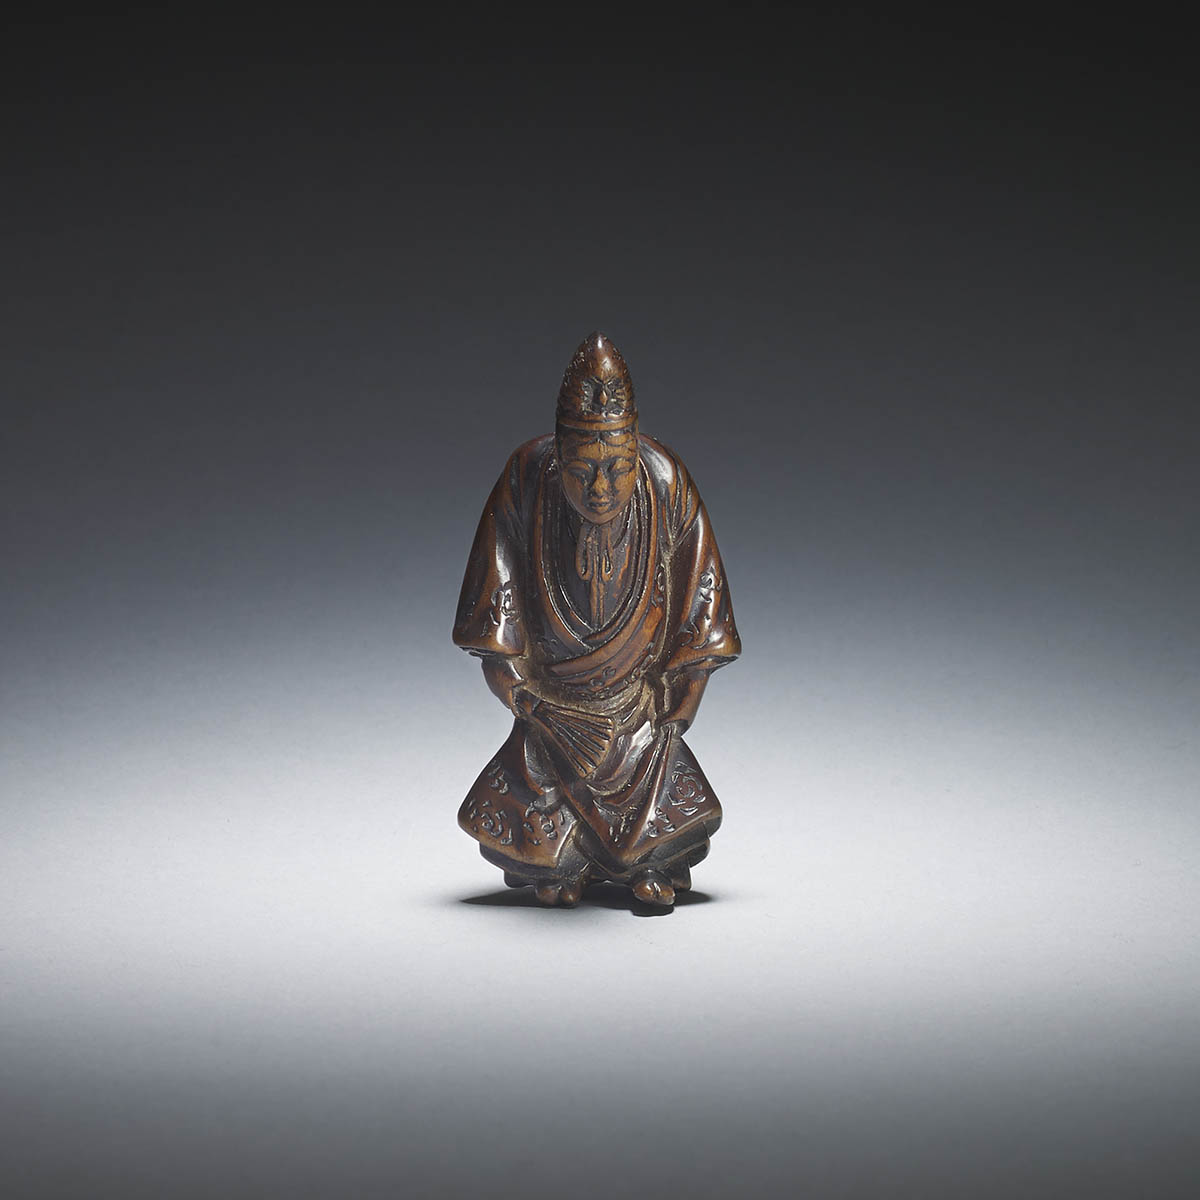 Gessho, wood netsuke of a temple servant